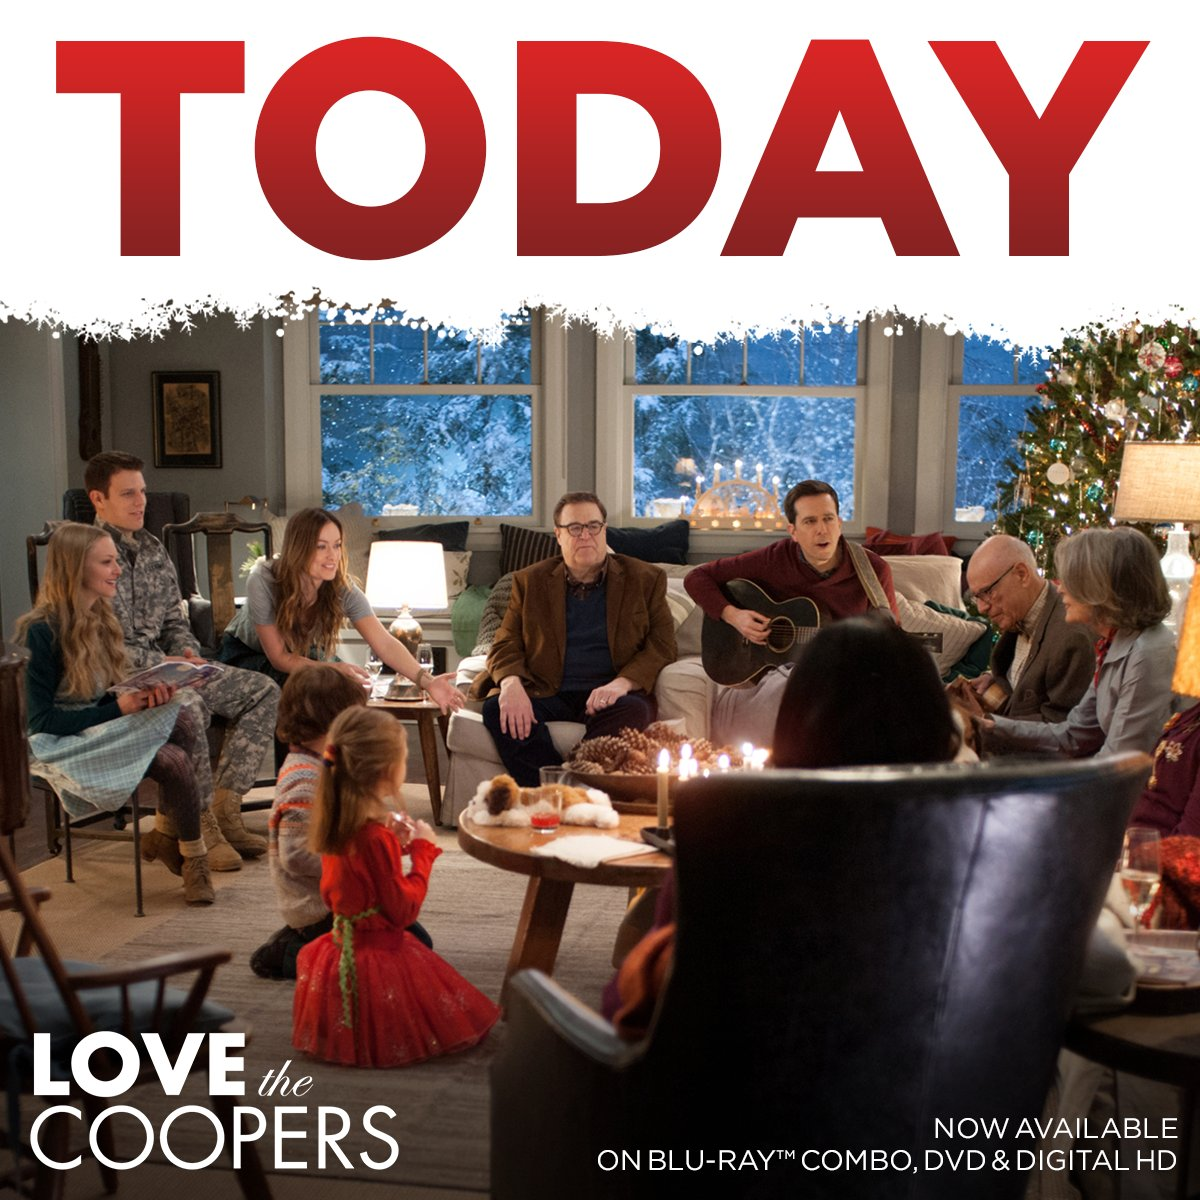 Join the Coopers for a family get-together. Now on Blu-ray & DVD! https://t.co/koMlcVCe0V https://t.co/5JZCYa8tvB